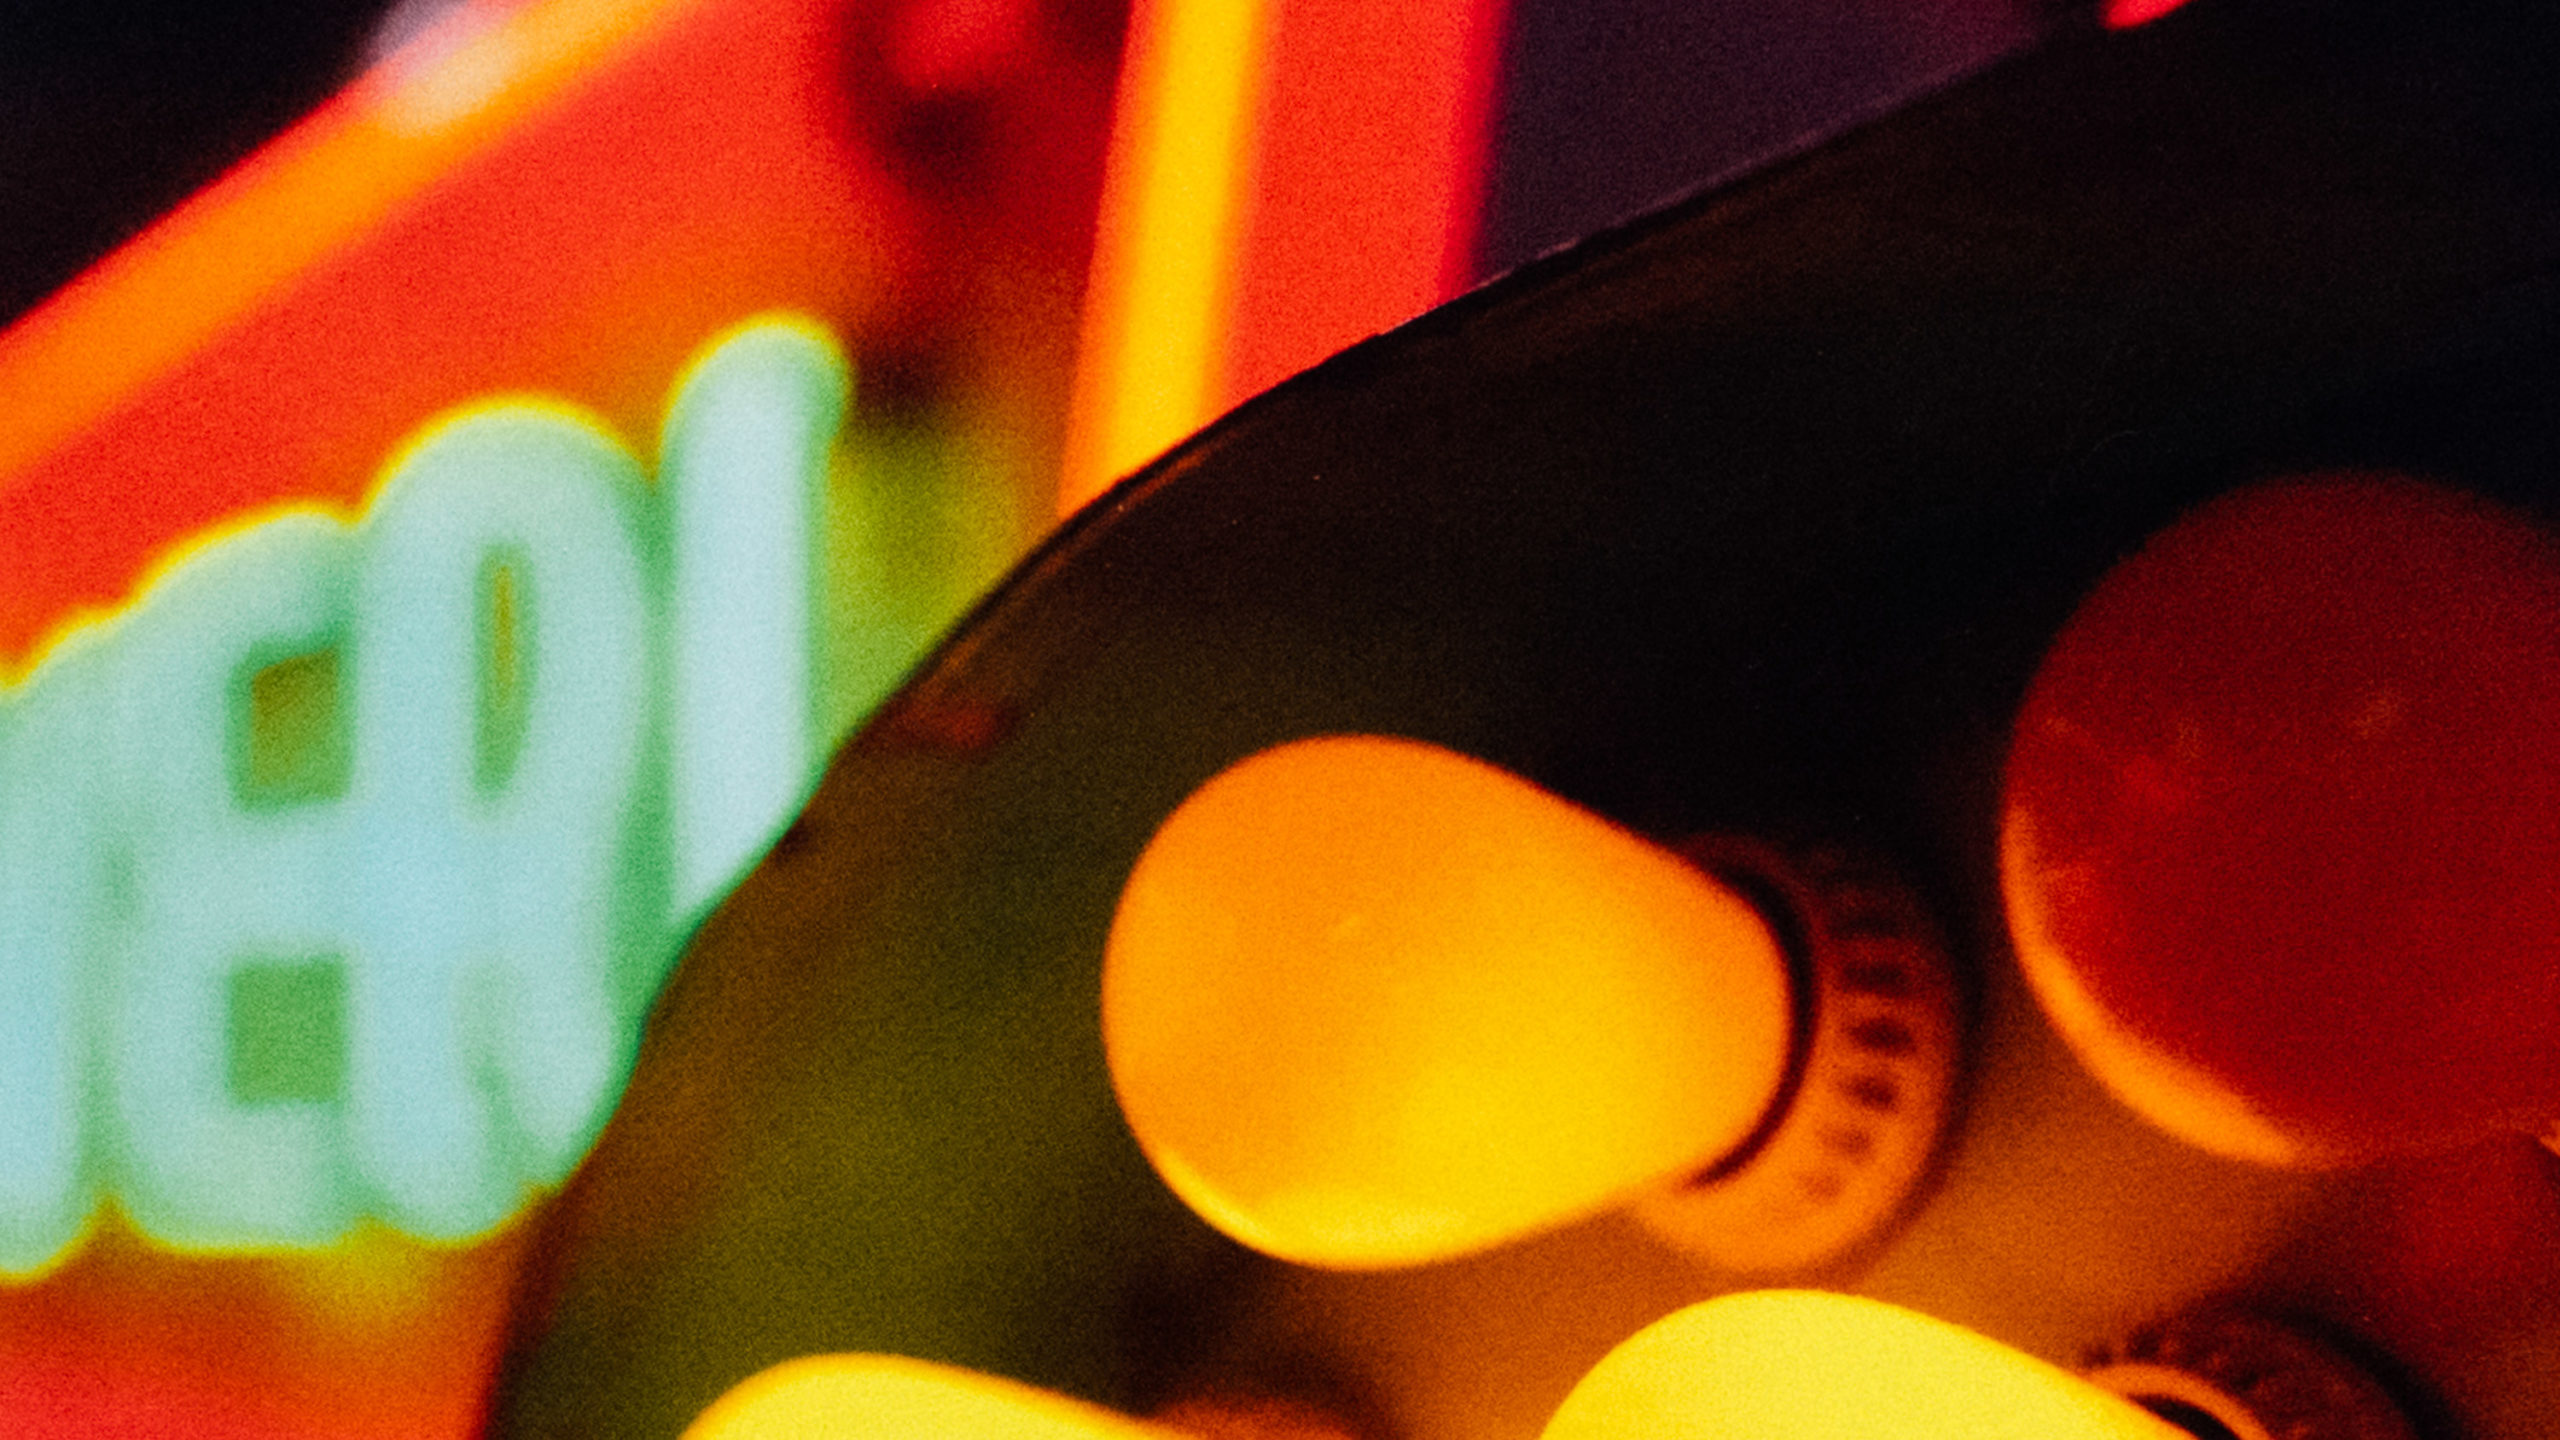 Closeup of a light bulb with neon lights blurred in the background